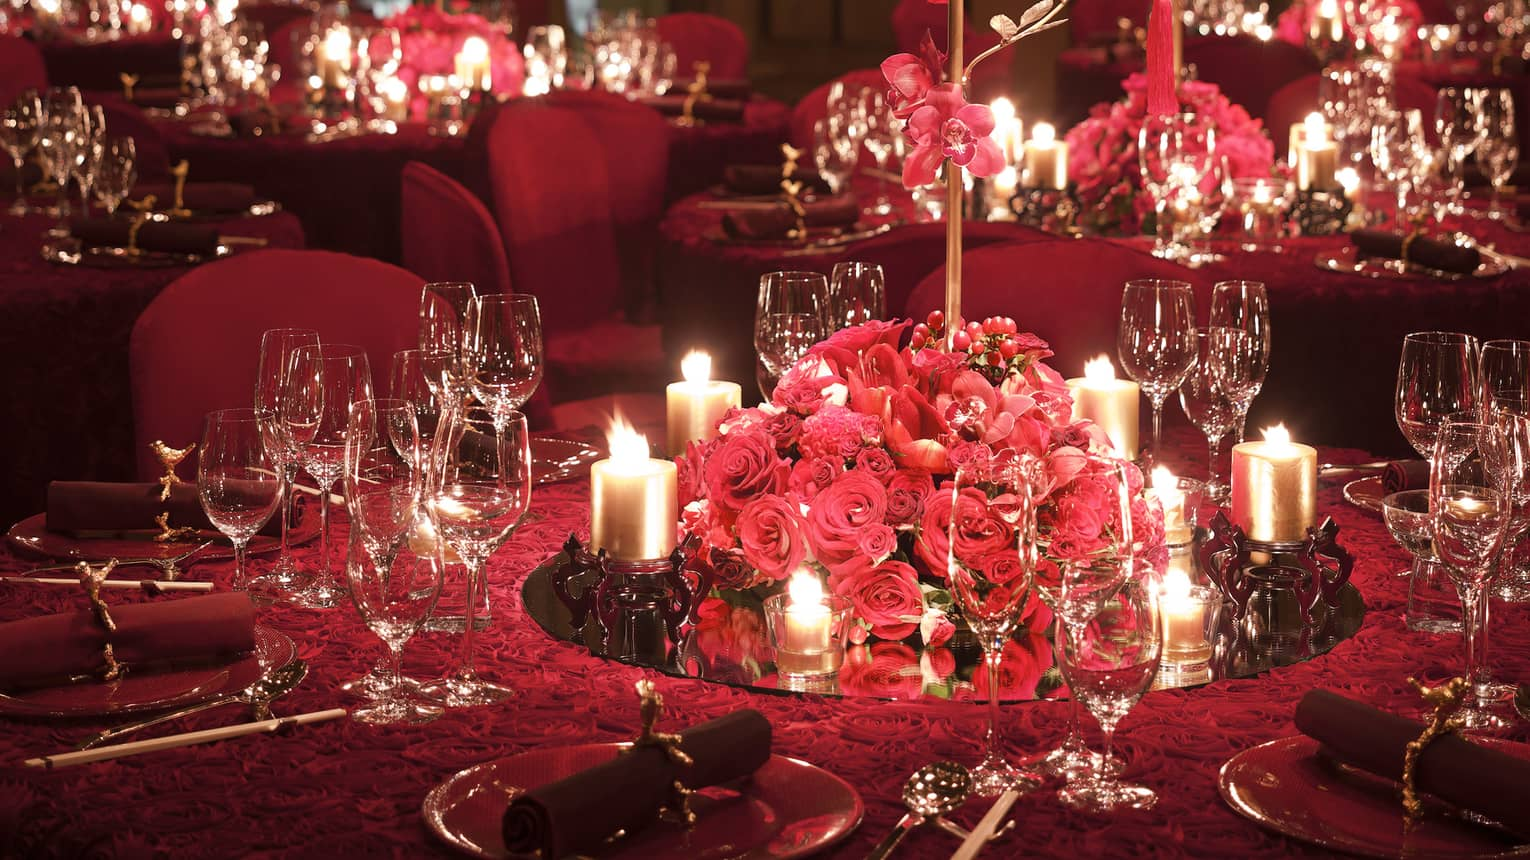 Glowing candles and red roses on gold tree centrepieces on elegant banquet tables